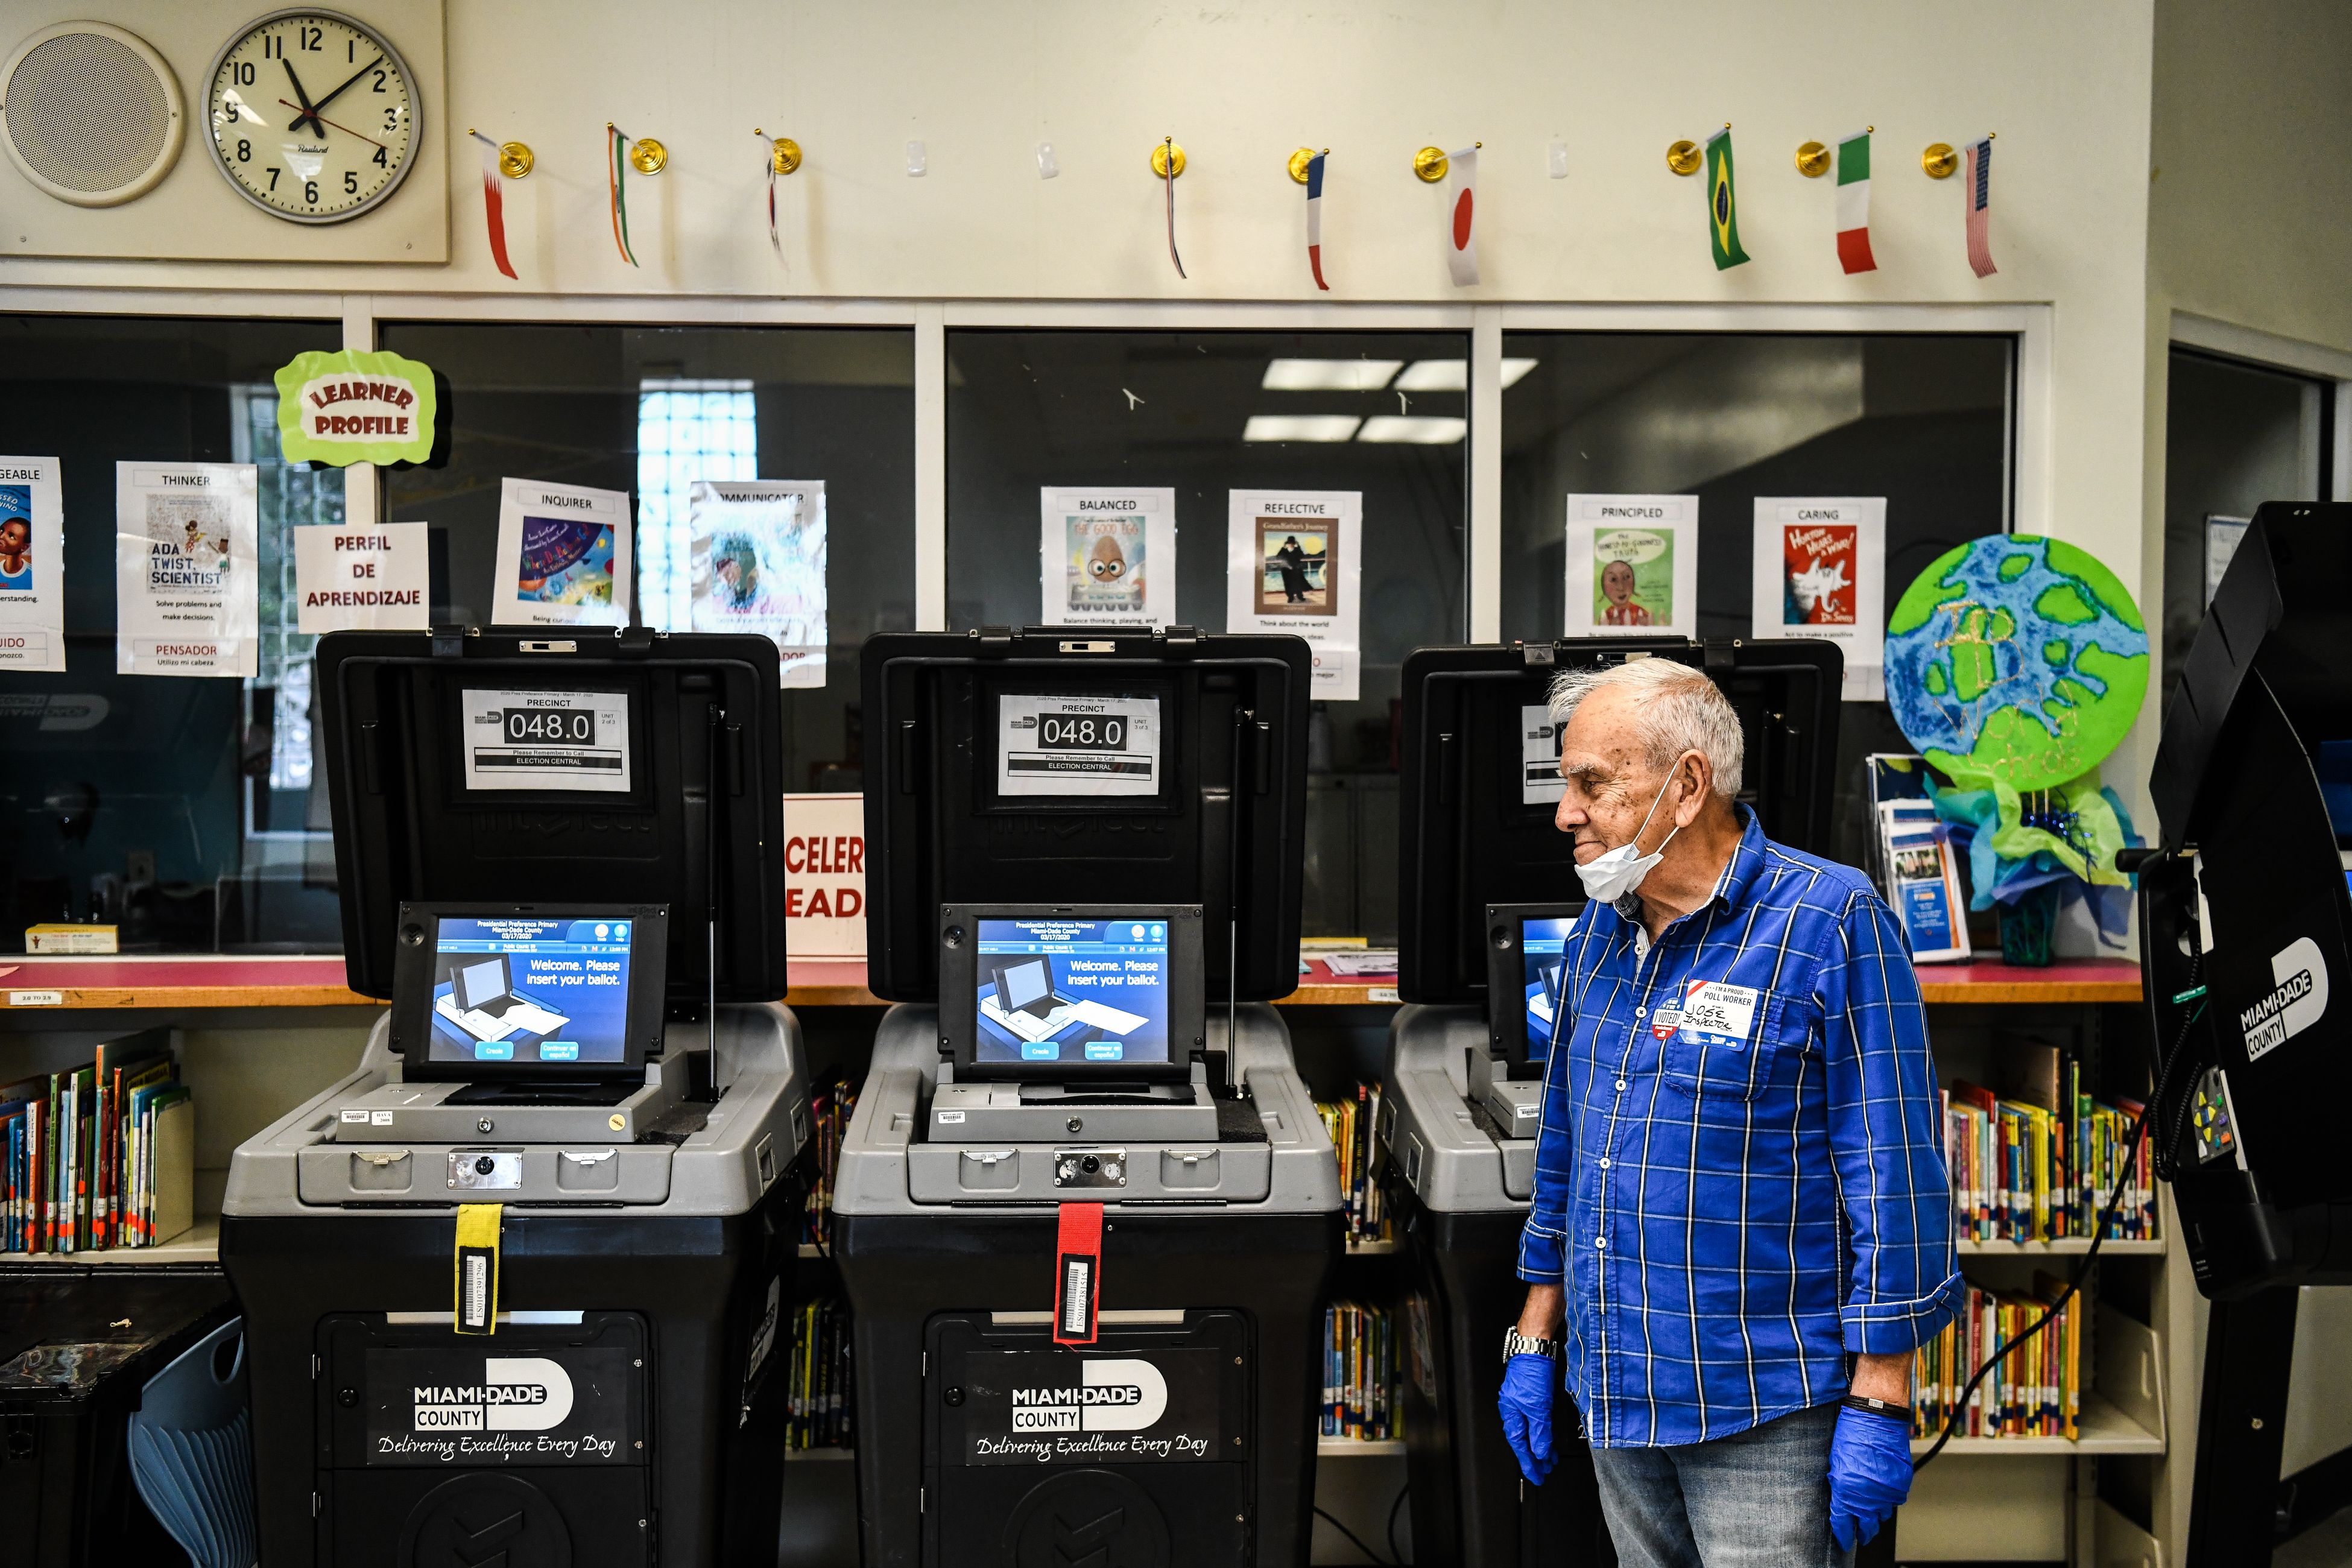 In a classroom full of books, three polling stations sit empty. A man in a blue shirt, with blue nitrile gloves and a face mask on his chin, stands next to them.